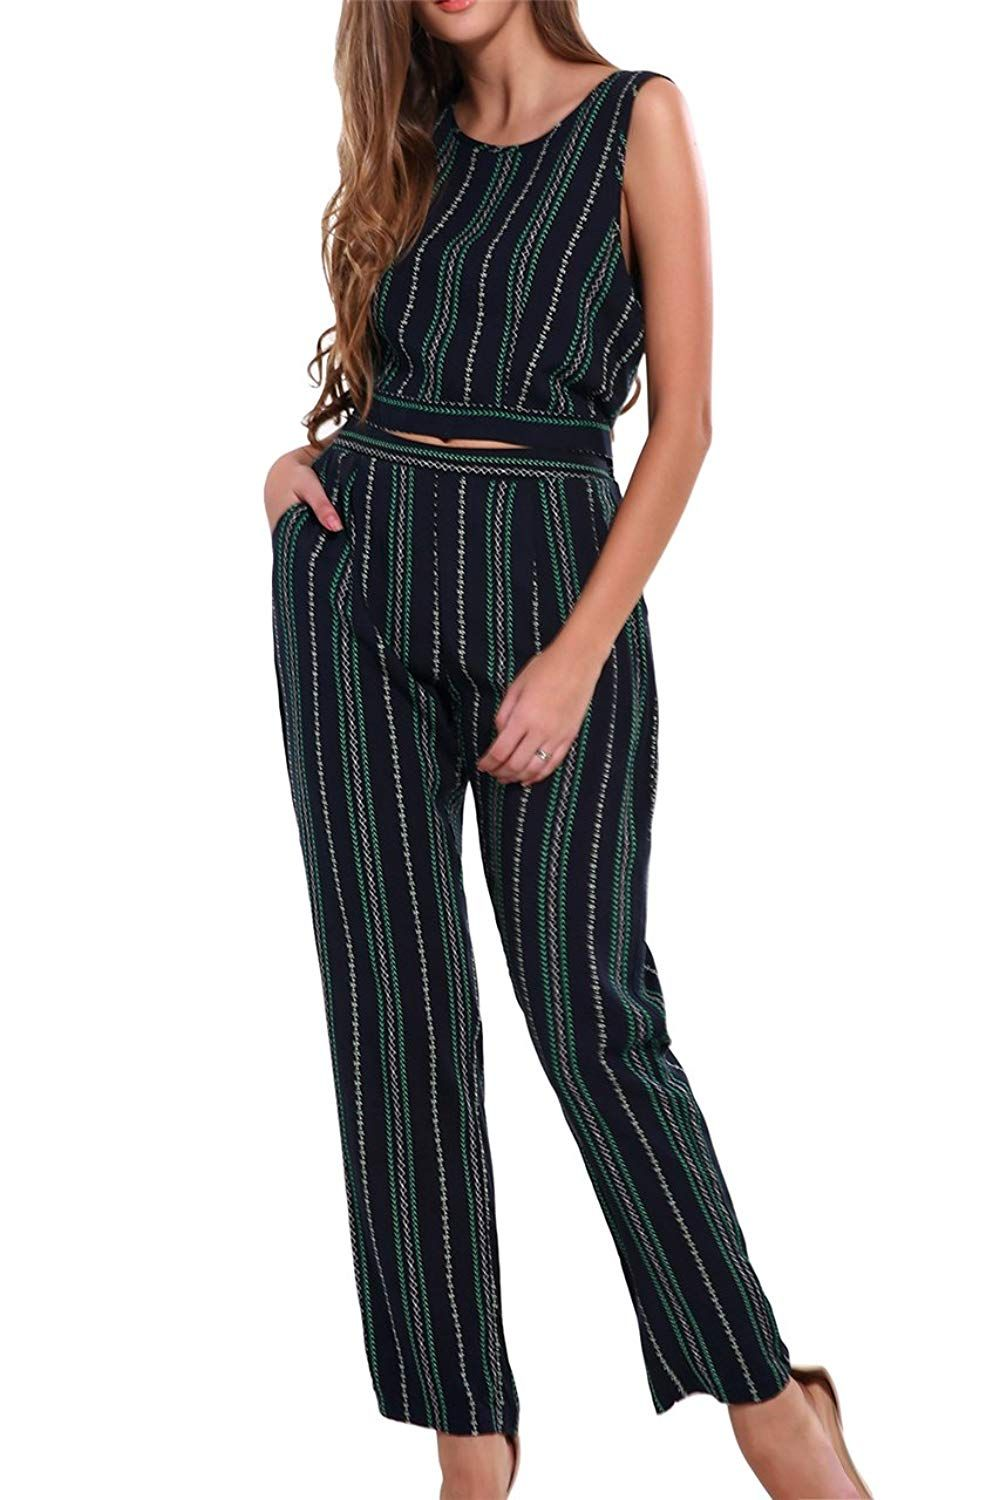 bc18e8851915 CHIC DIARY Women 2 Piece Set Square Crop Top Bodycon Casual Long Pants